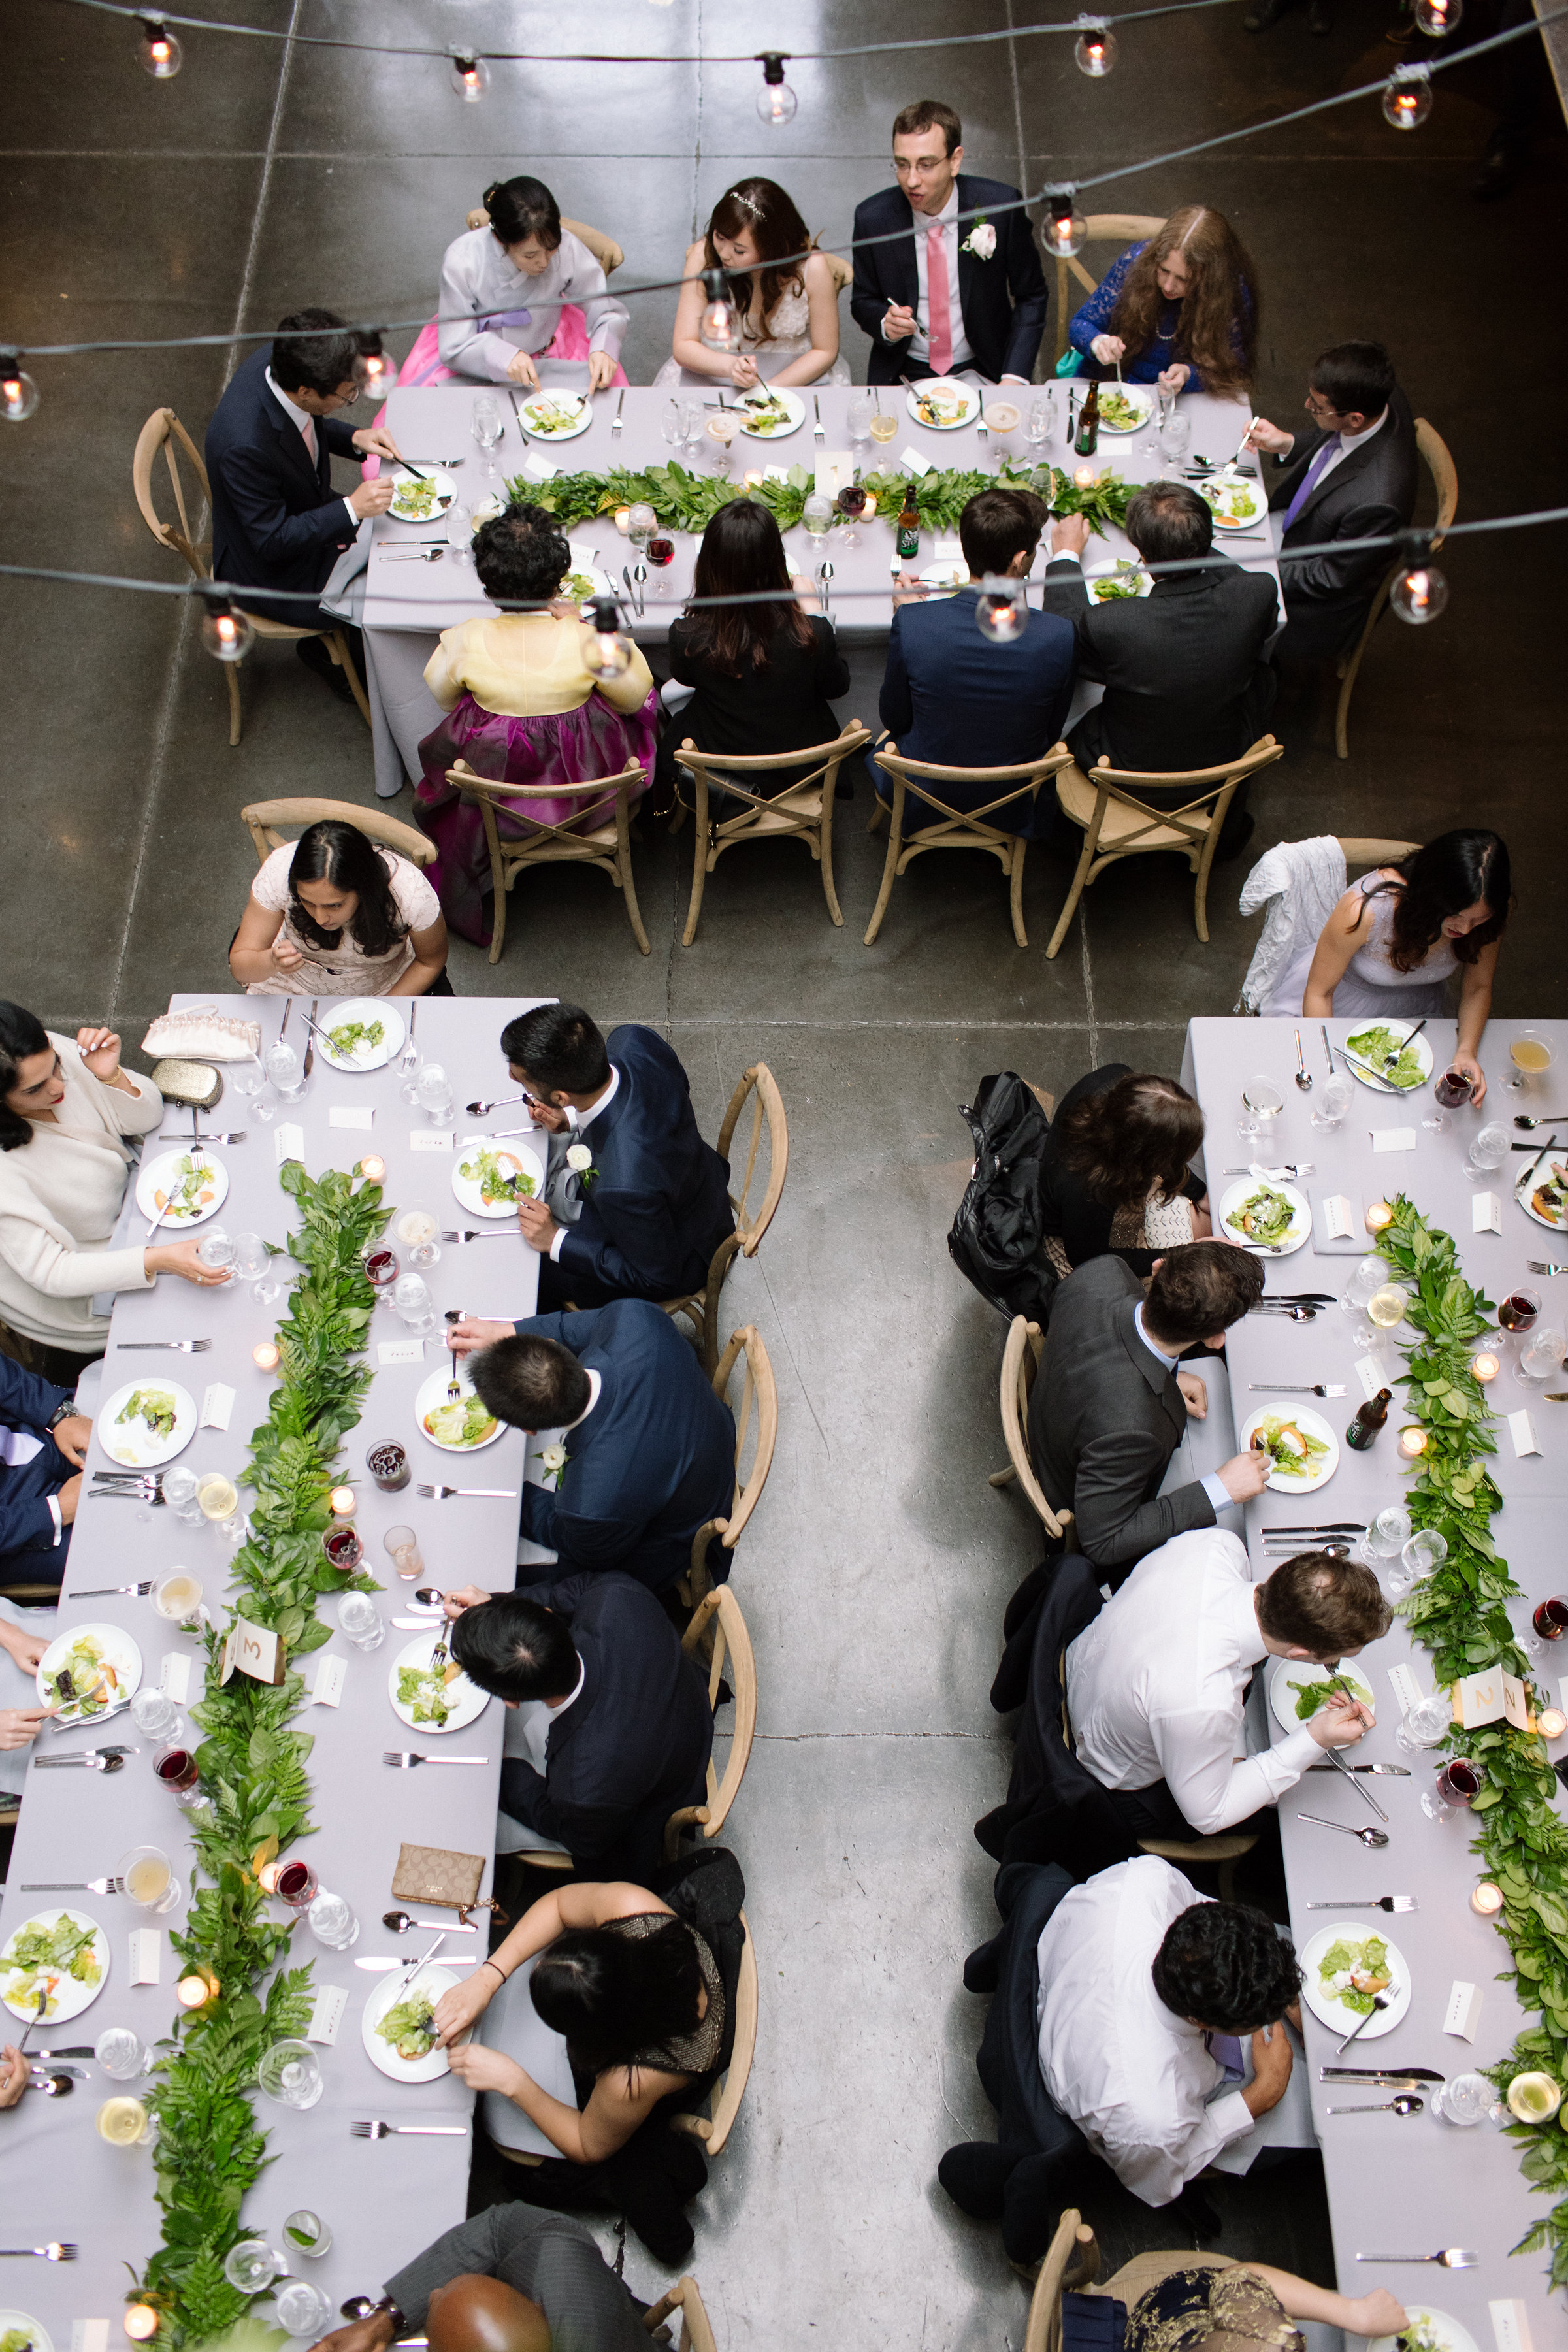 Tall & Small Events NYC, H&B, Modern Indoor Urban Industrial Multicultural Korean Spring Wedding, New York City Real Wedding at The Foundry, LIC NY. Photo: City Love Photography